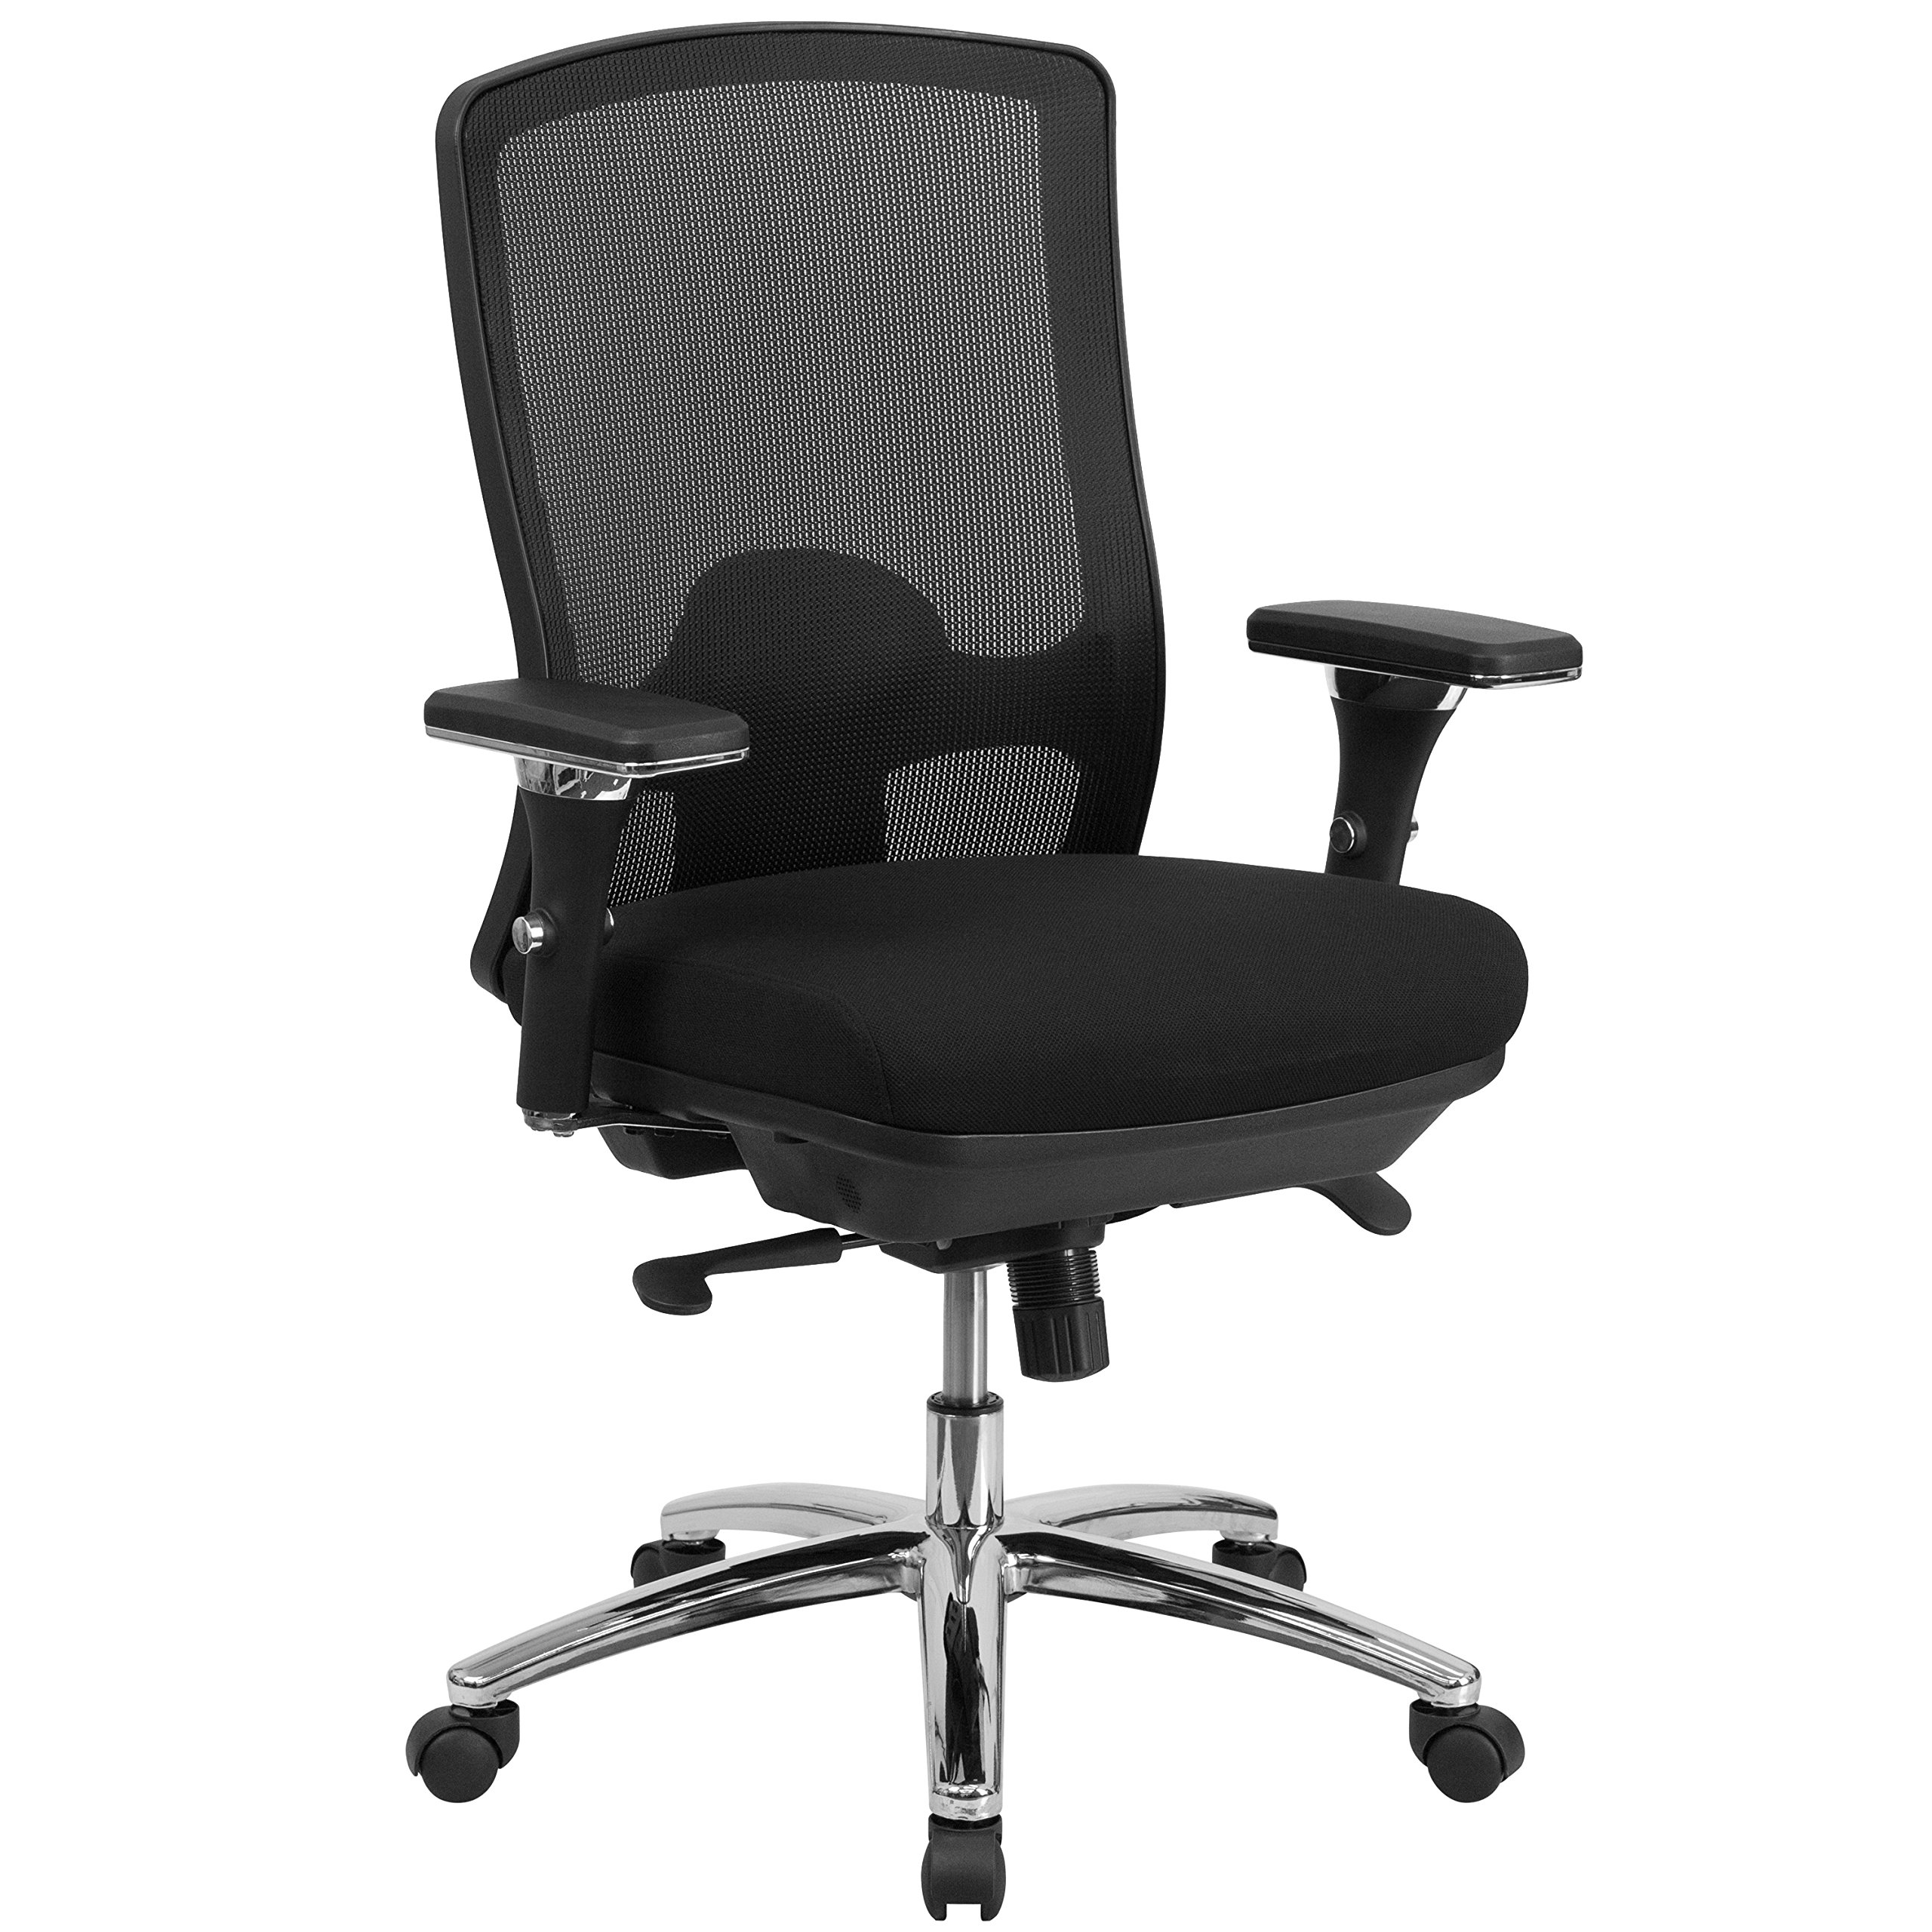 Flash Furniture HERCULES Series 24/7 Intensive Use Big & Tall 350 lb. Rated Black Mesh Multifunction Swivel Chair with Synchro-Tilt